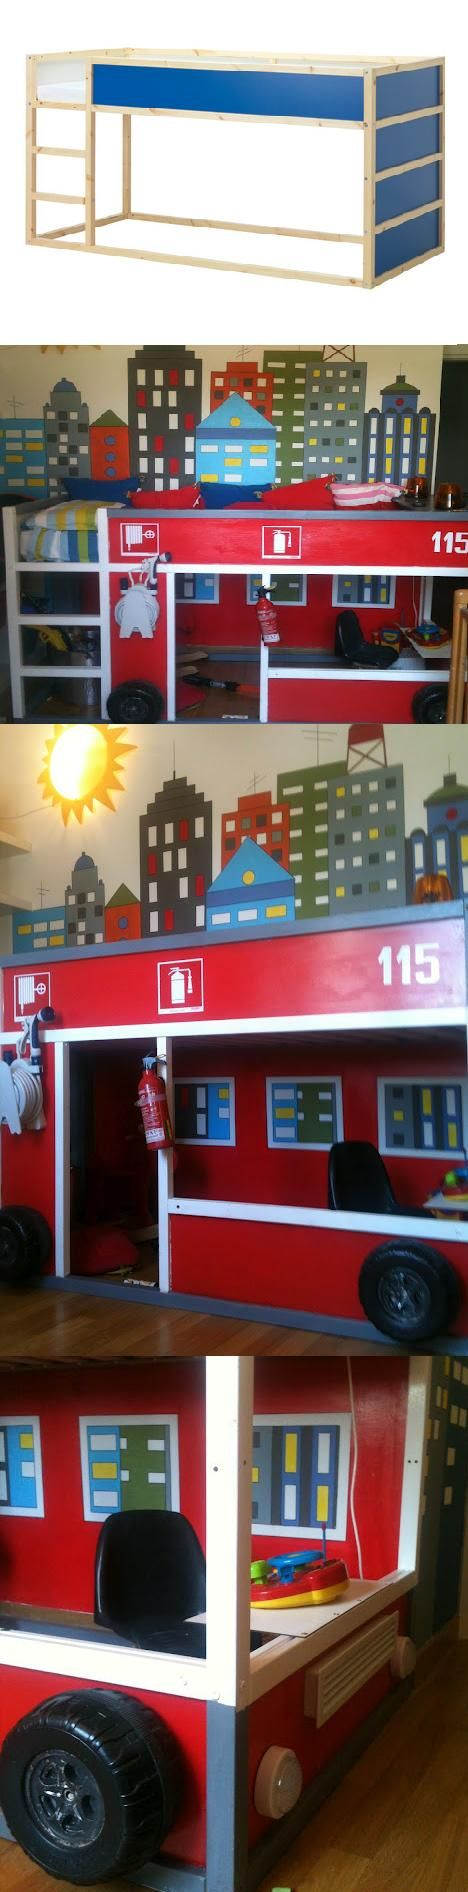 IKEA Child's Loft Bed Converted to Fire Engine | Shared by LION